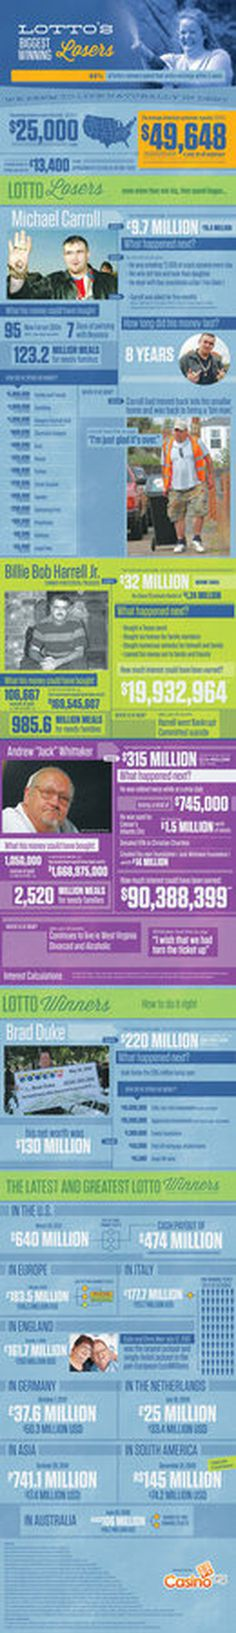 Lottery's Biggest Winning Losers #infographic #design #graphic